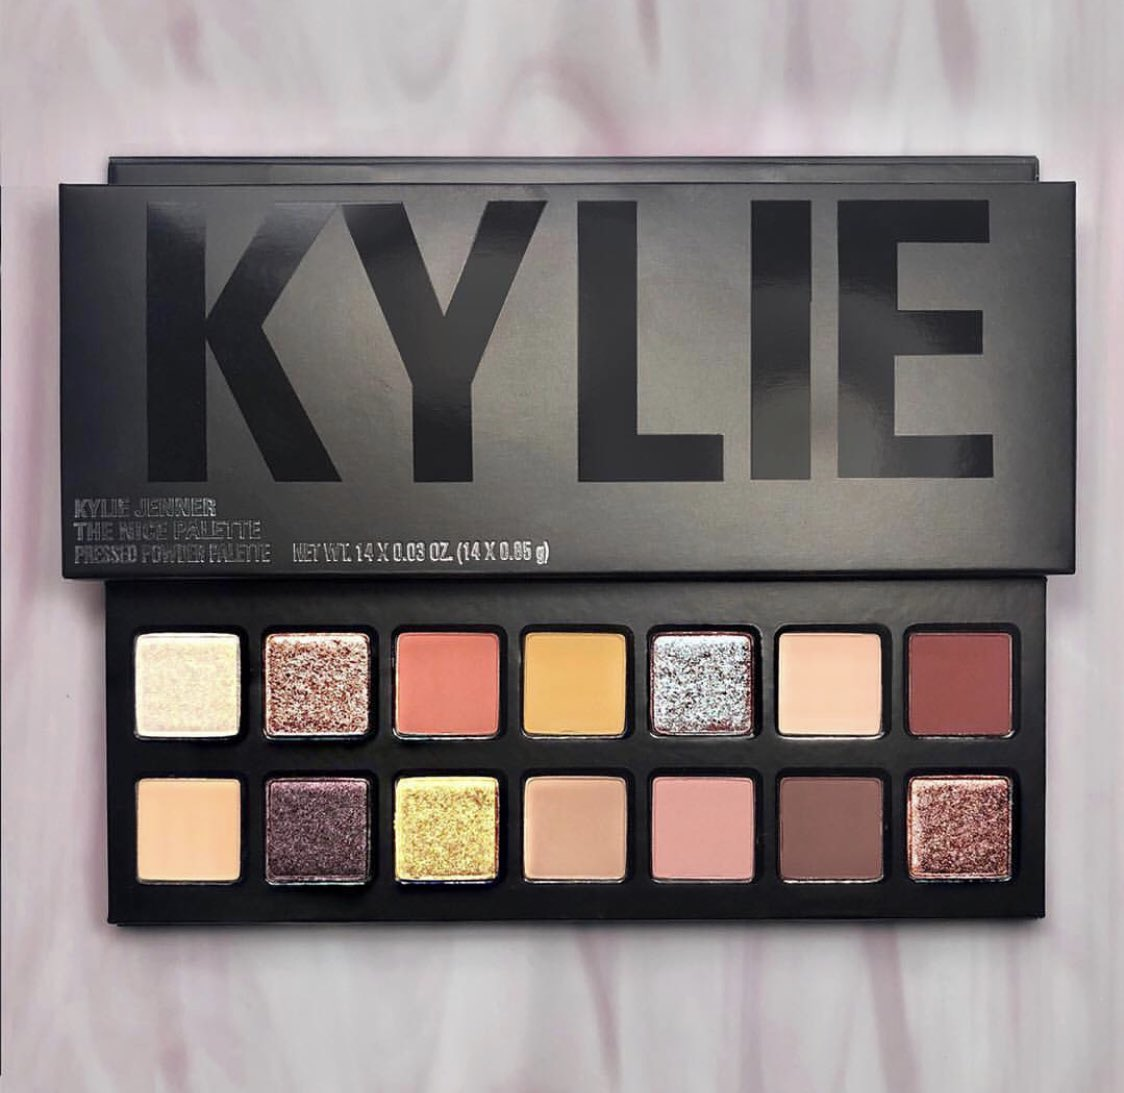 She is BACK in a new Black Packaging  The Nice #EyeshadowPalette from  @kyliecosmetics #Holidays2017 #Collection  Has a mix of finishes, matte, metallic and duochrome. Super wearable palette with warm shades. Online  JULY 24TH<br>http://pic.twitter.com/tVDpCCEafm